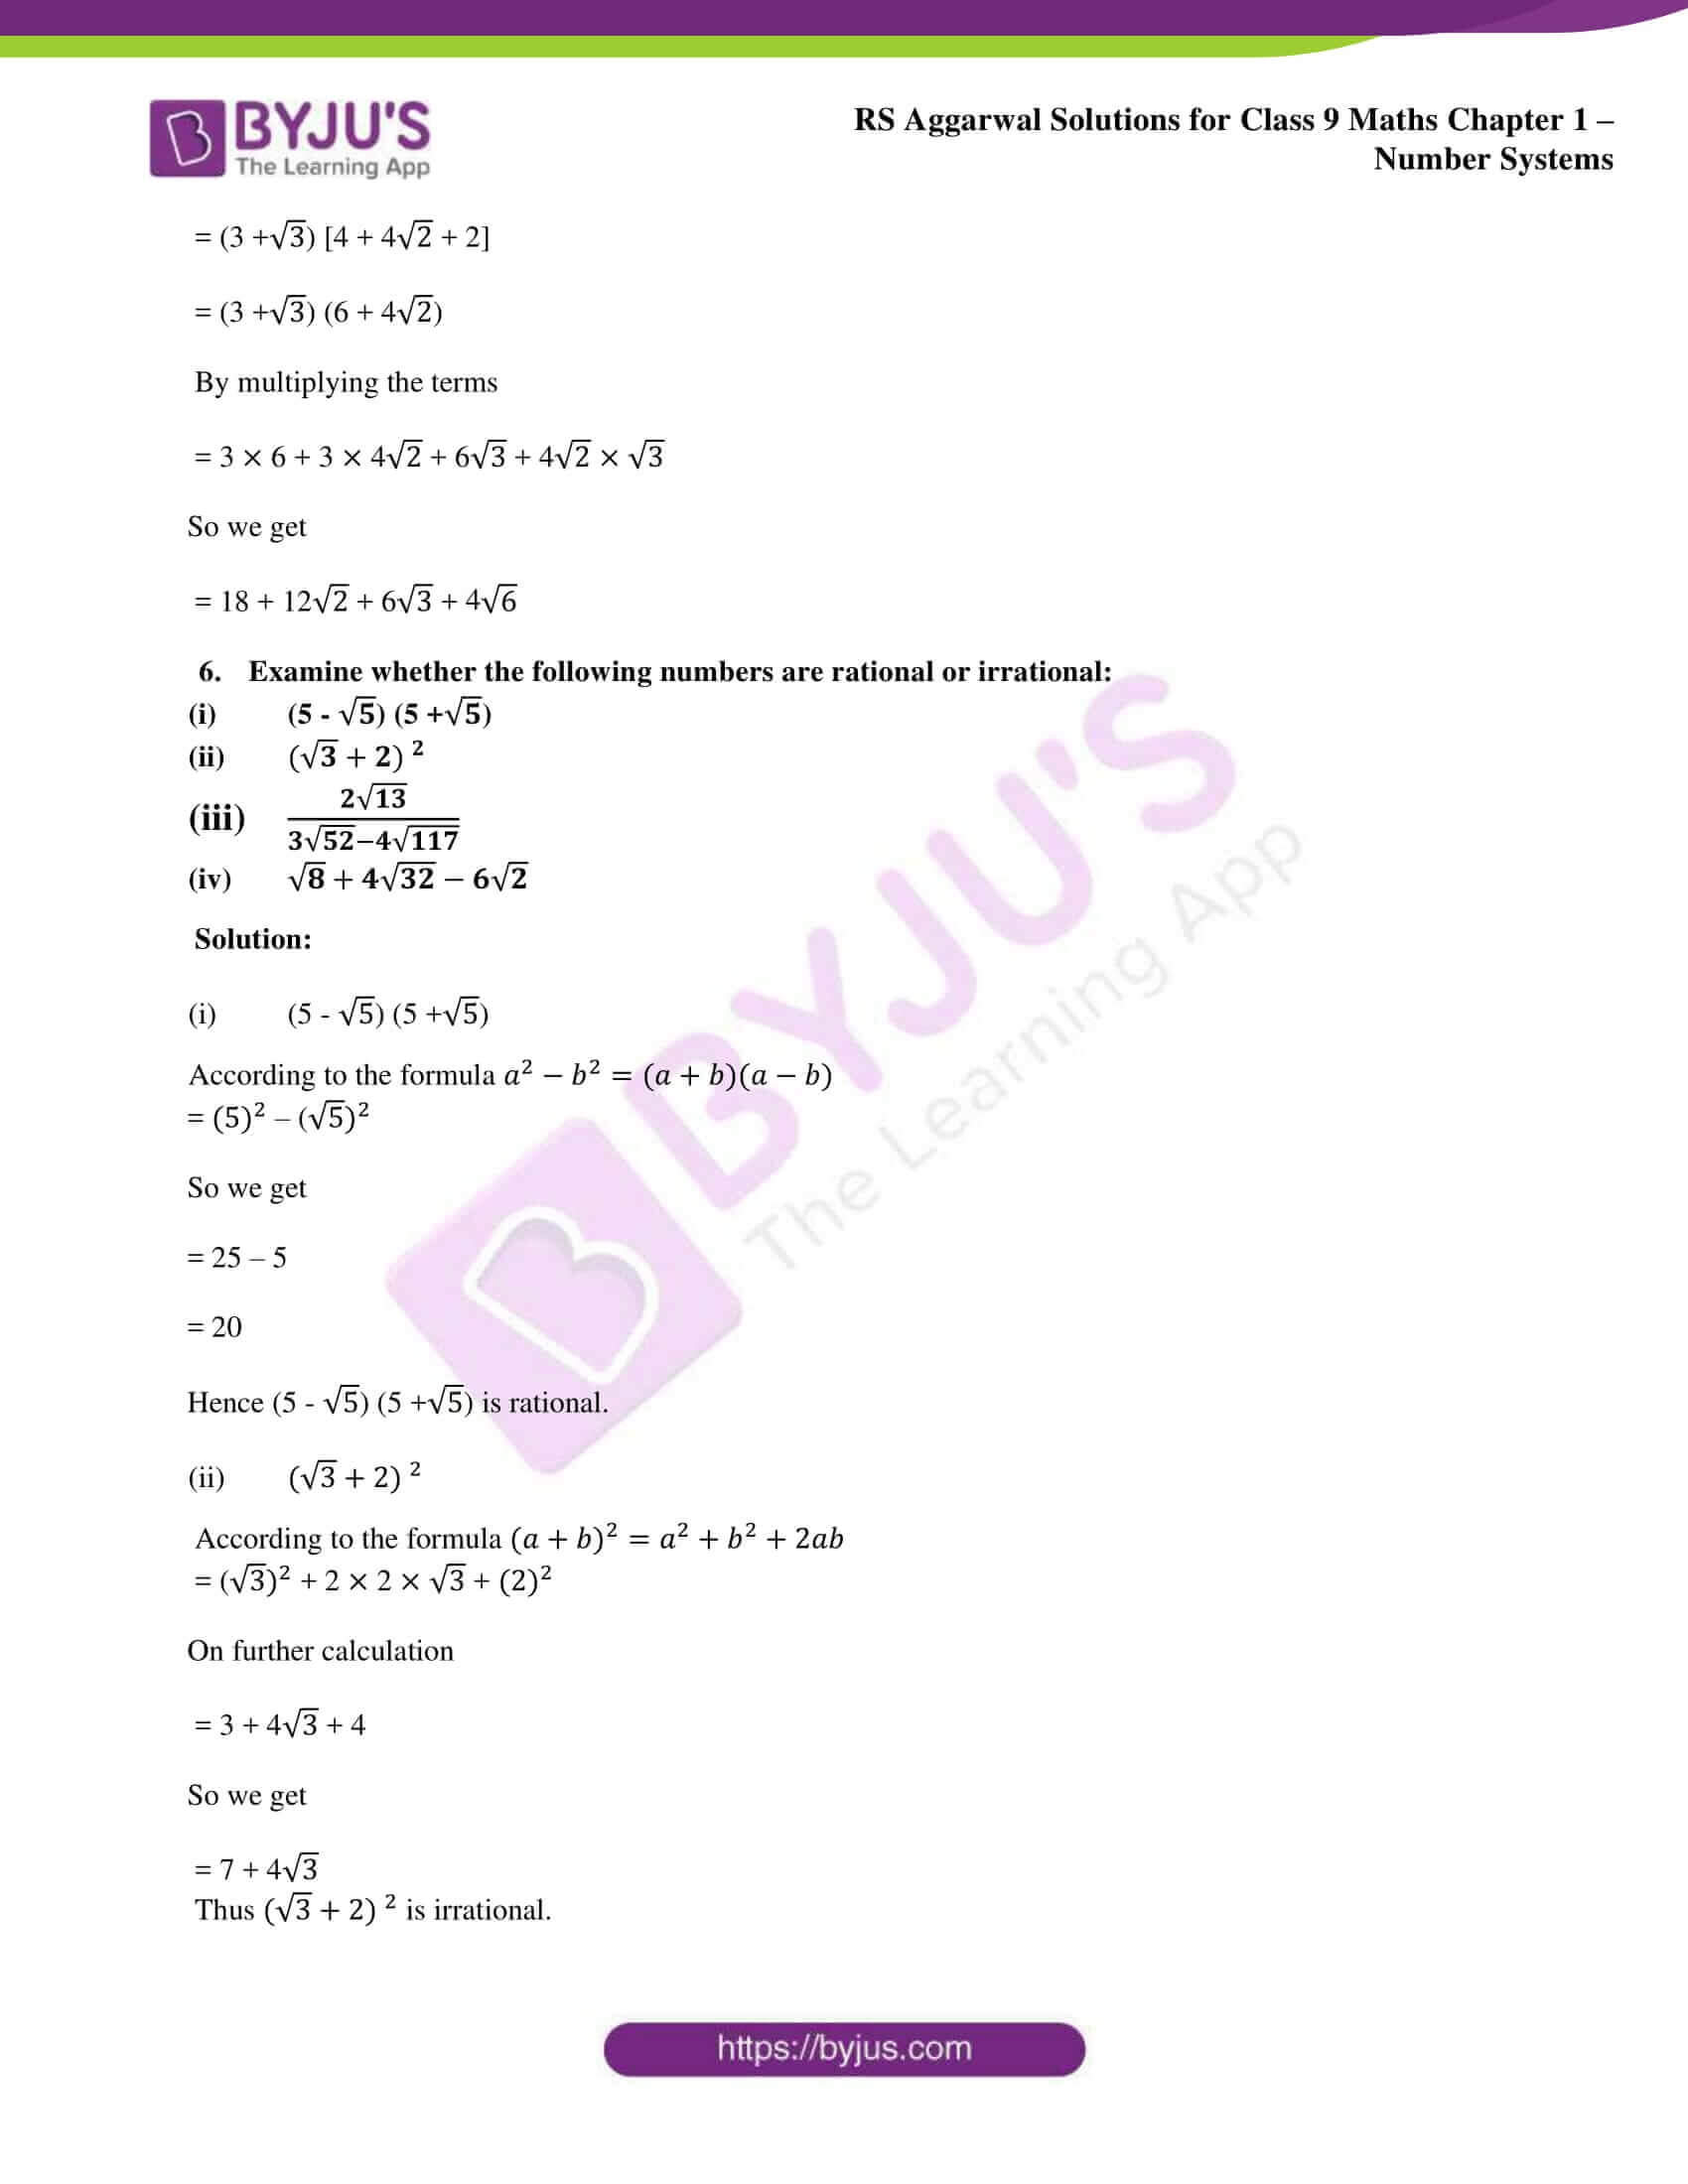 RS Aggarwal Sol class 9 Maths Chapter 1